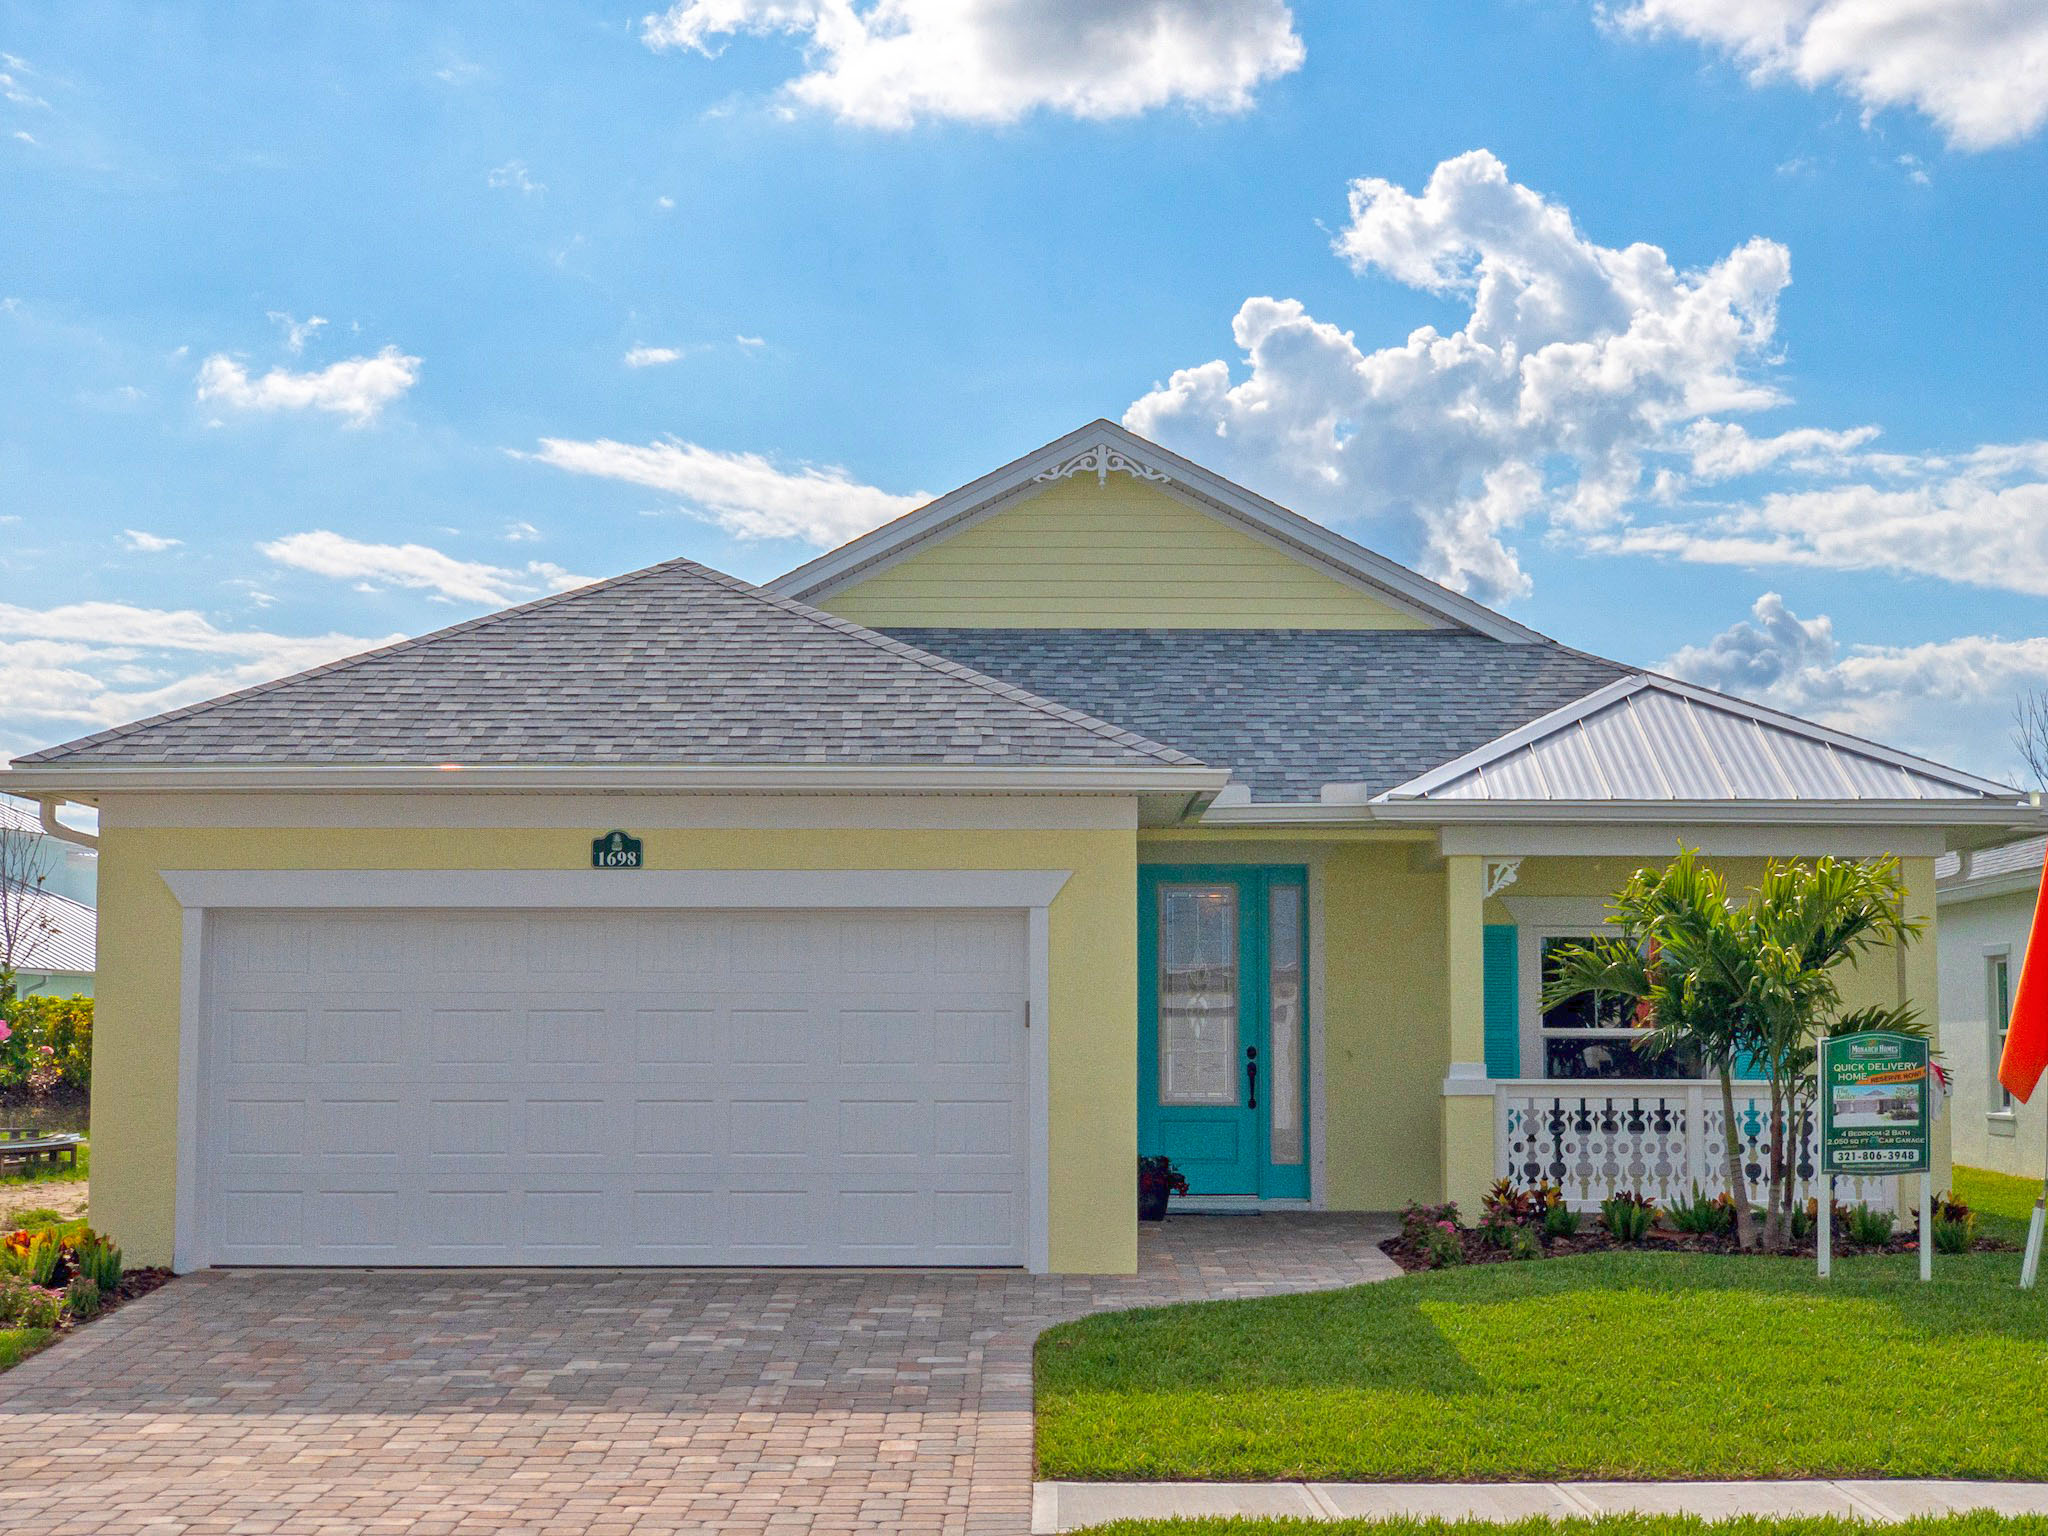 The Bailey - 4 bedroom, 2 bathroom, 2 car garage2,050 sq. ft. under air / 2,806 sq. ft. totalView FloorplanView Virtual TourQuick Move In